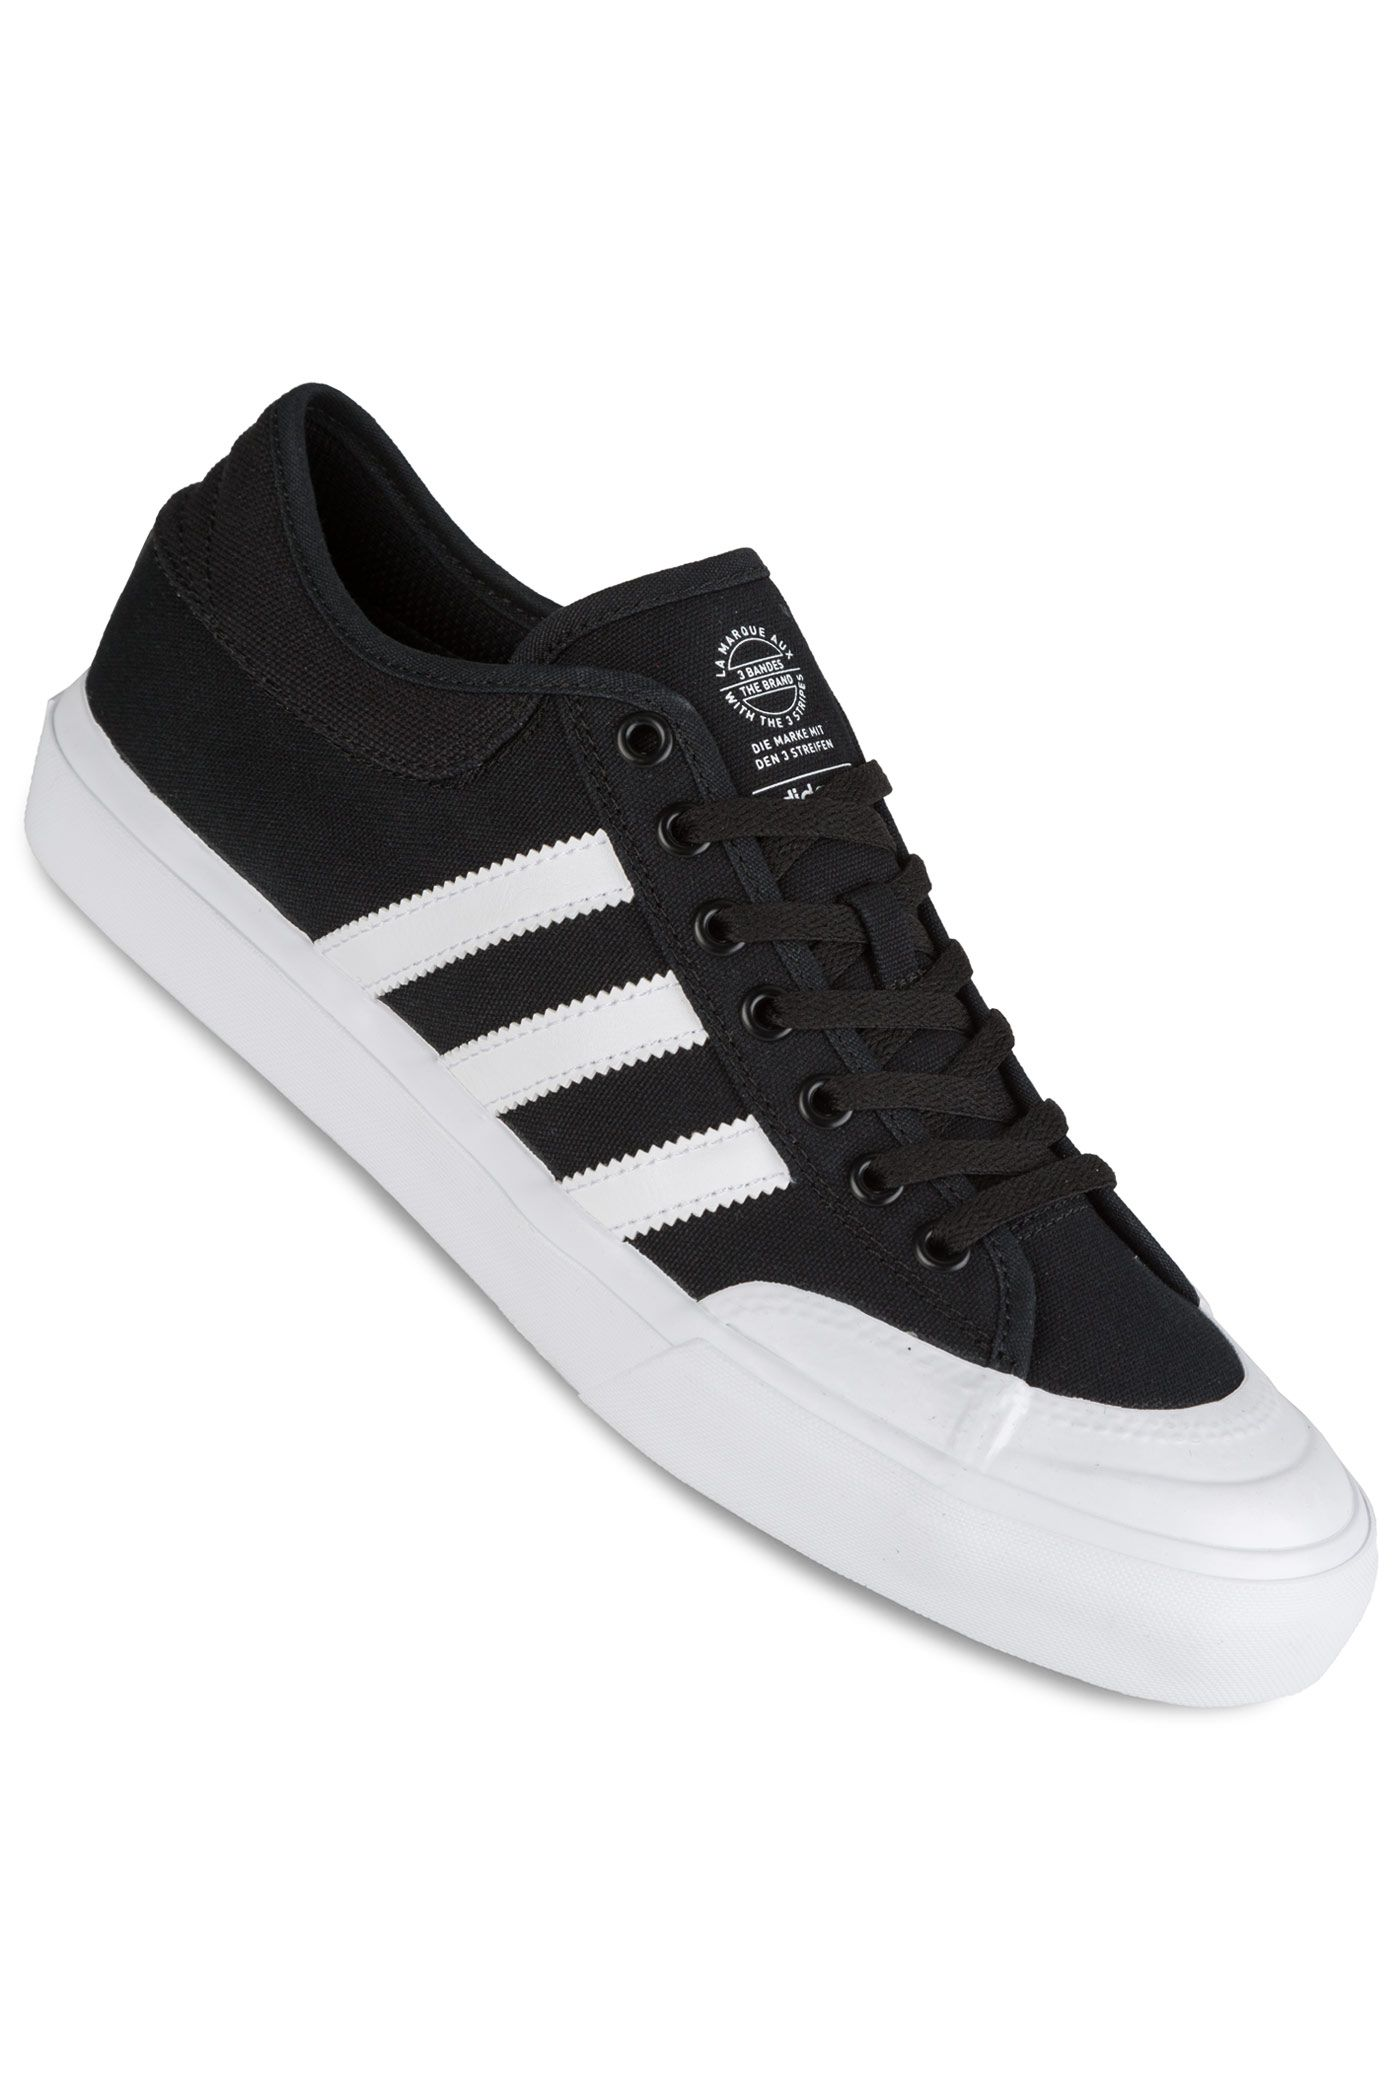 chaussures skate homme adidas